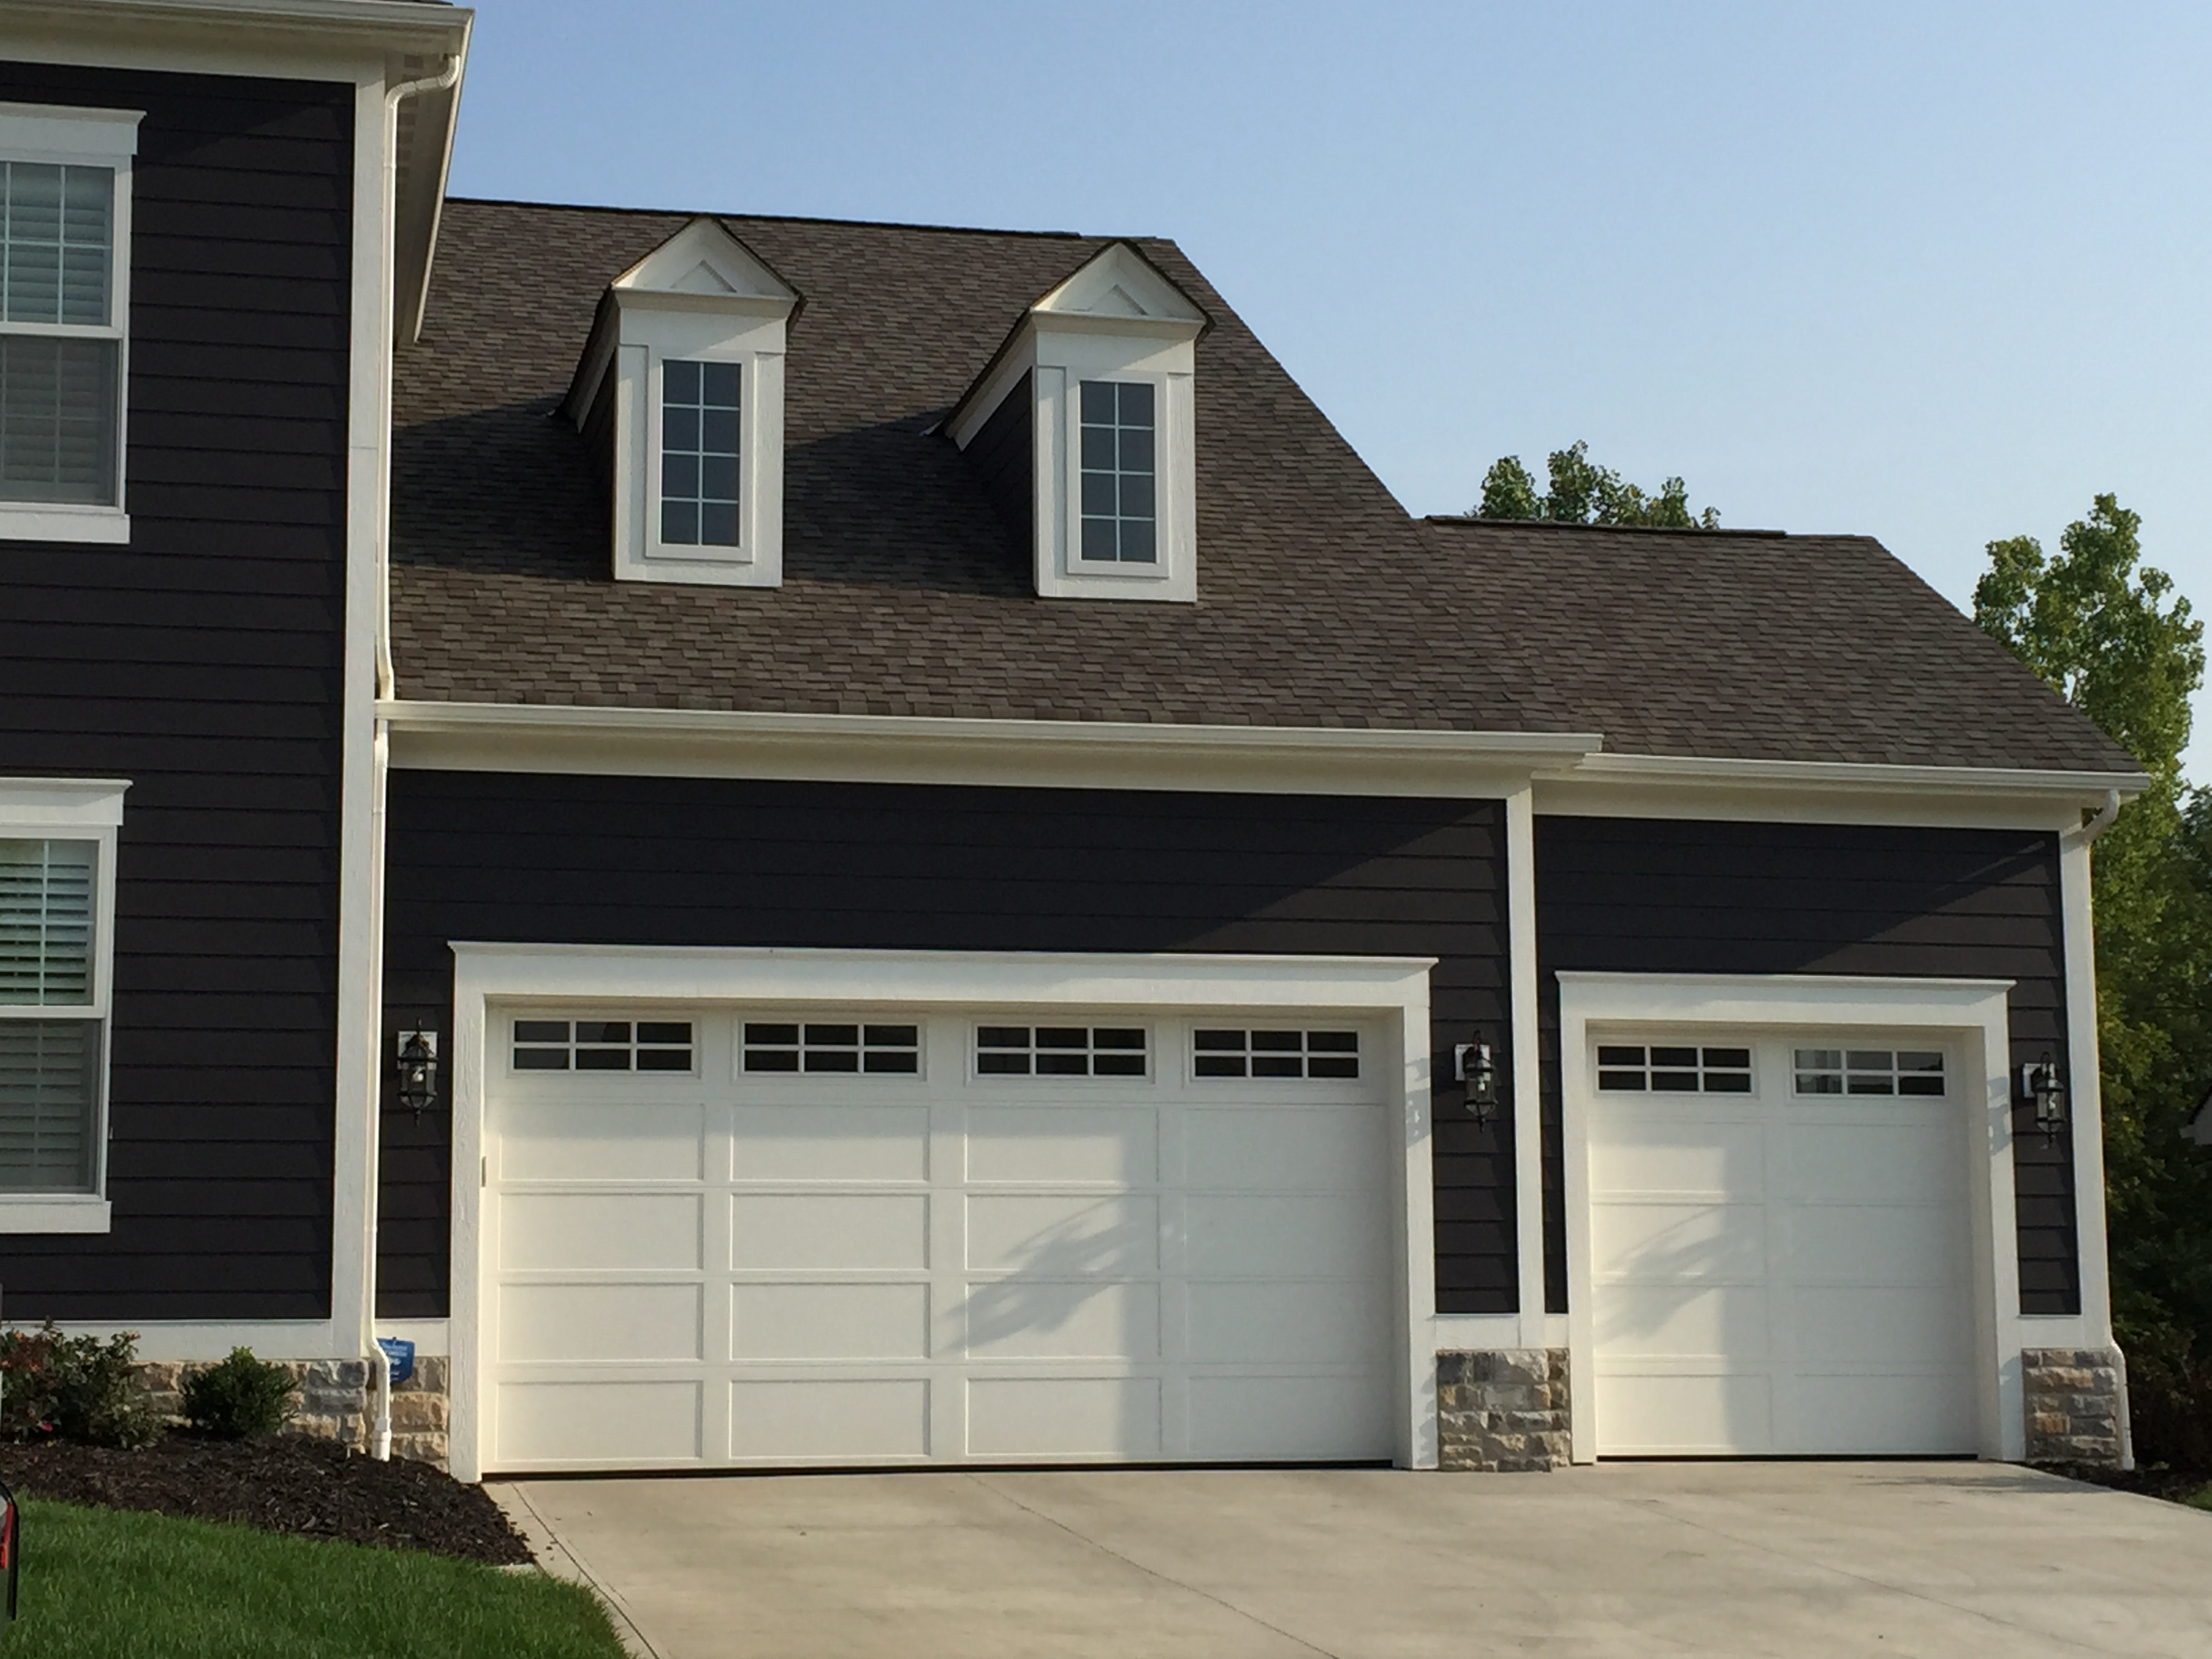 Gallery Of Garage Doors Nofziger Doors 614 873 3905